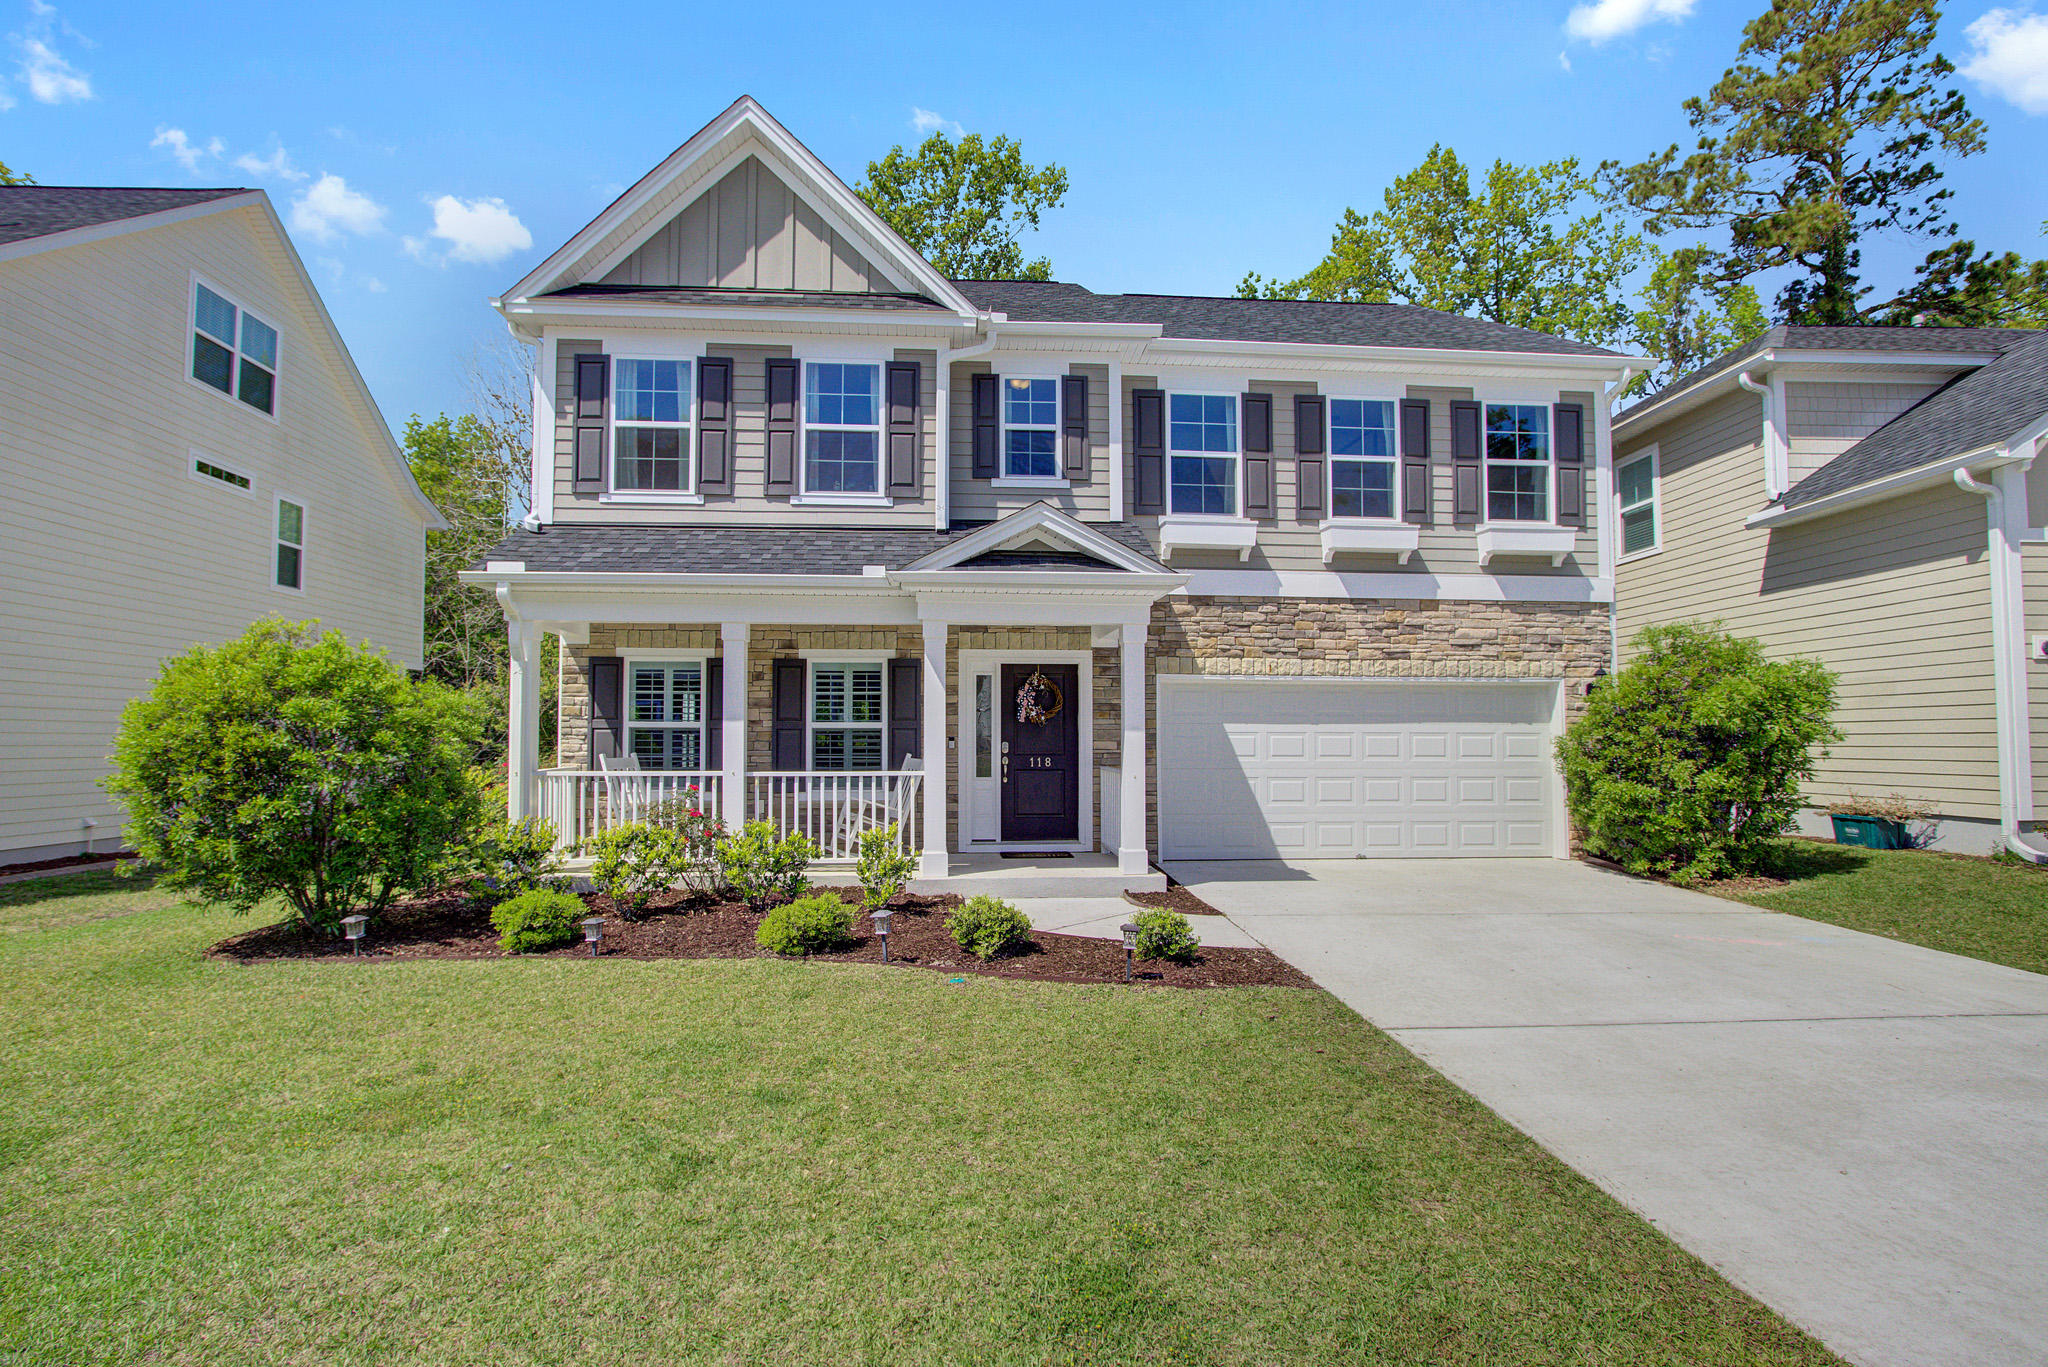 118 Elliot Creek Lane Summerville, Sc 29485